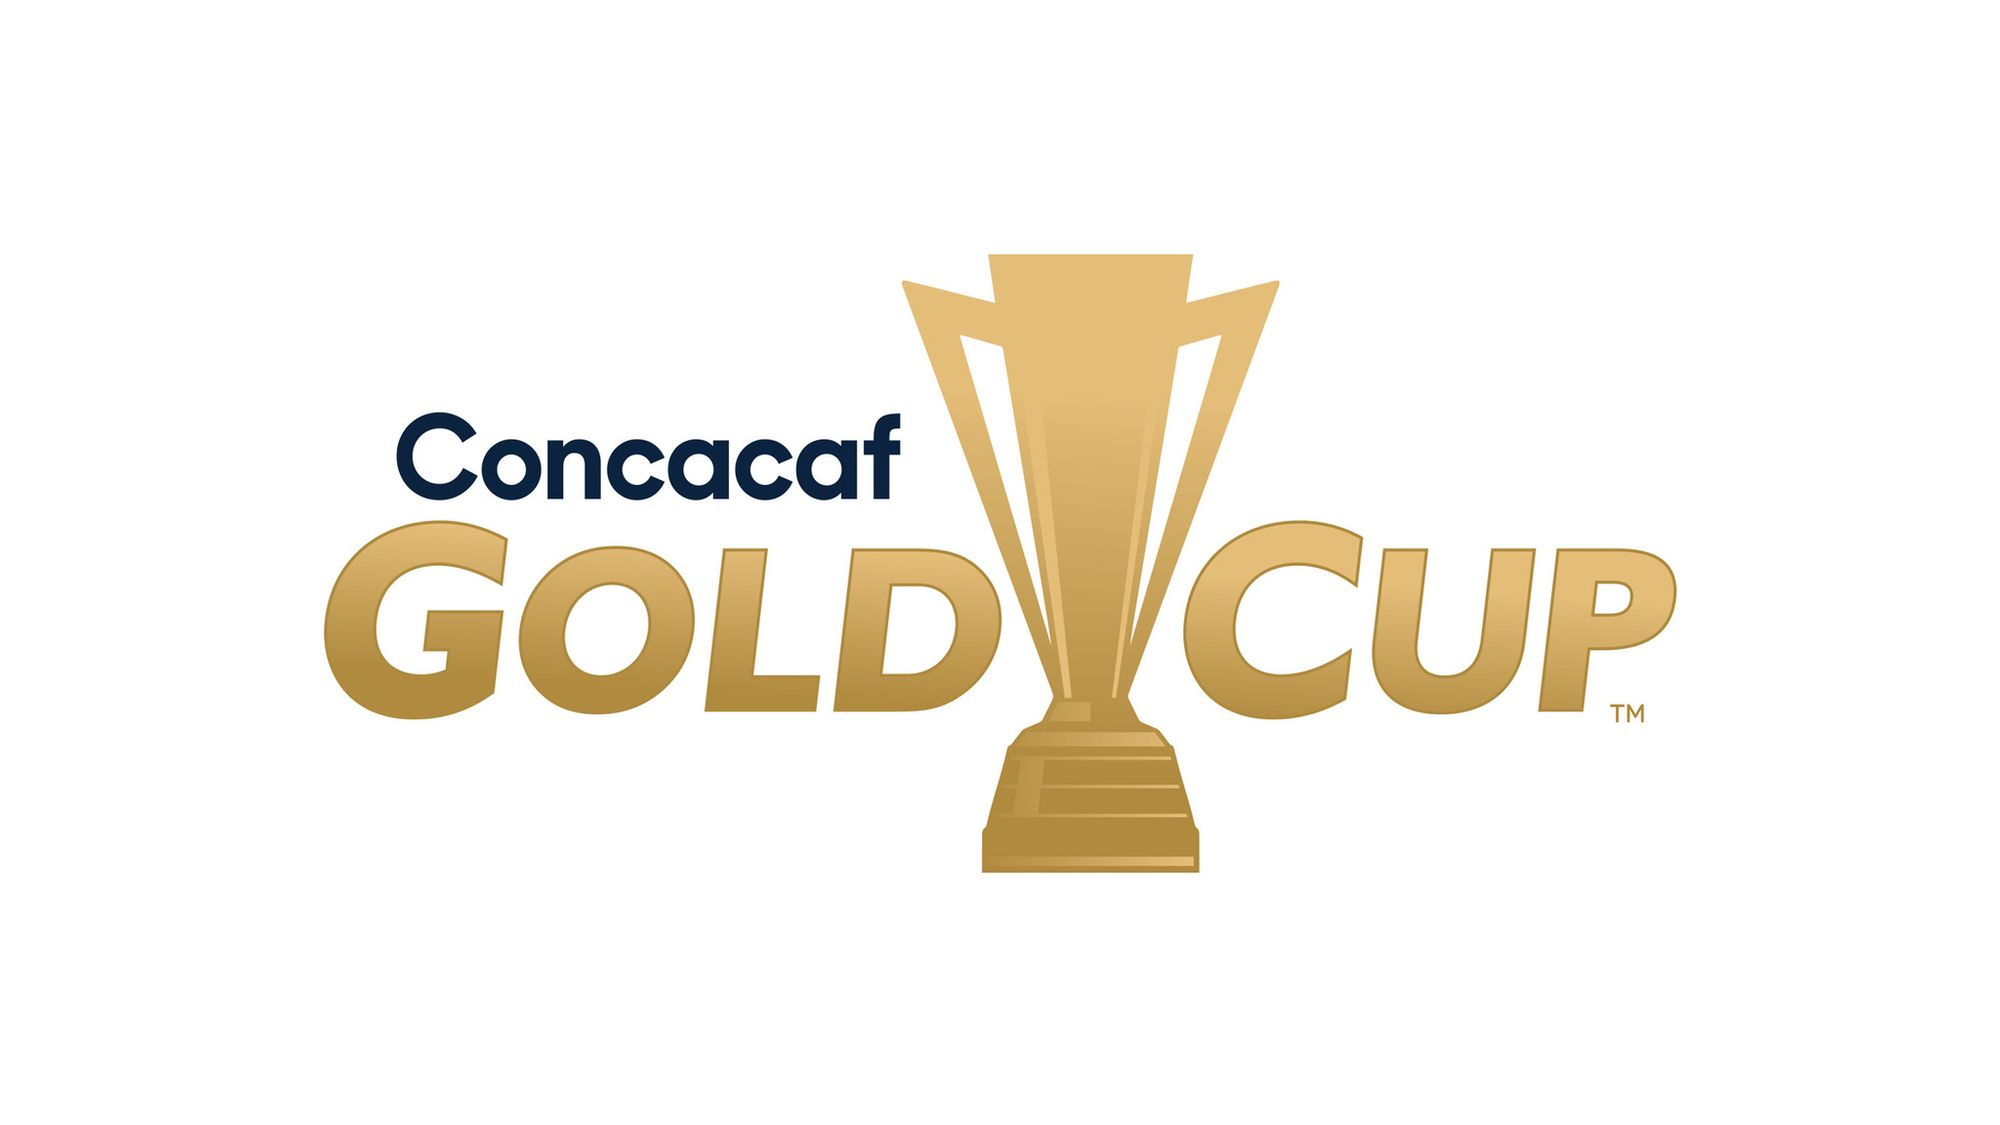 Groups & Schedule for the 2019 Concacaf Gold Cup Announced